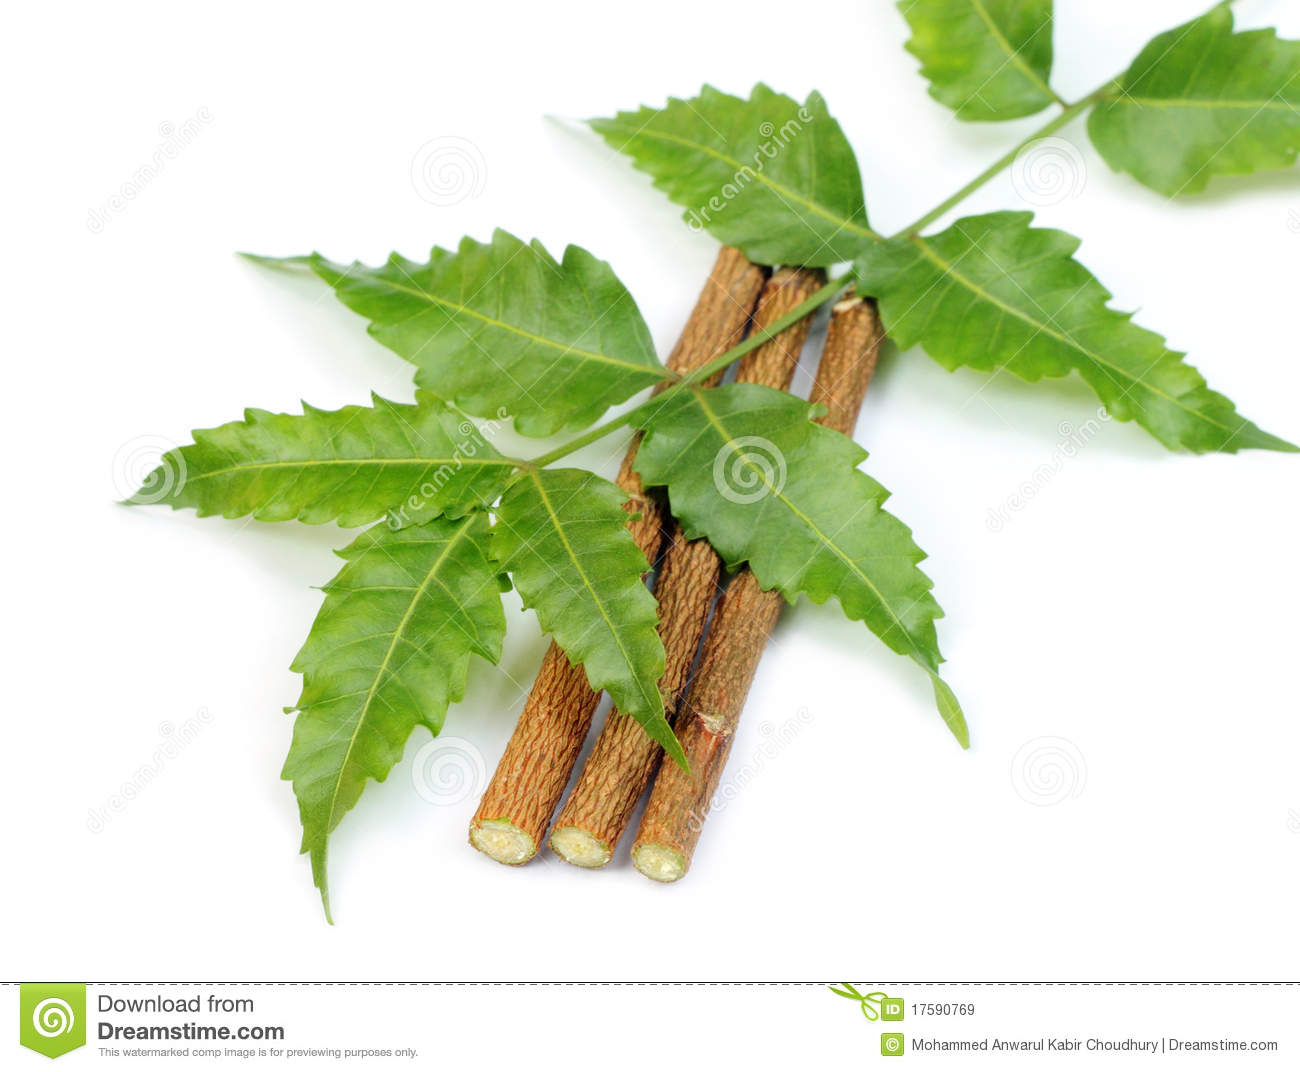 medicinal neem leaves with twigs royalty free stock images image 17590769. Black Bedroom Furniture Sets. Home Design Ideas